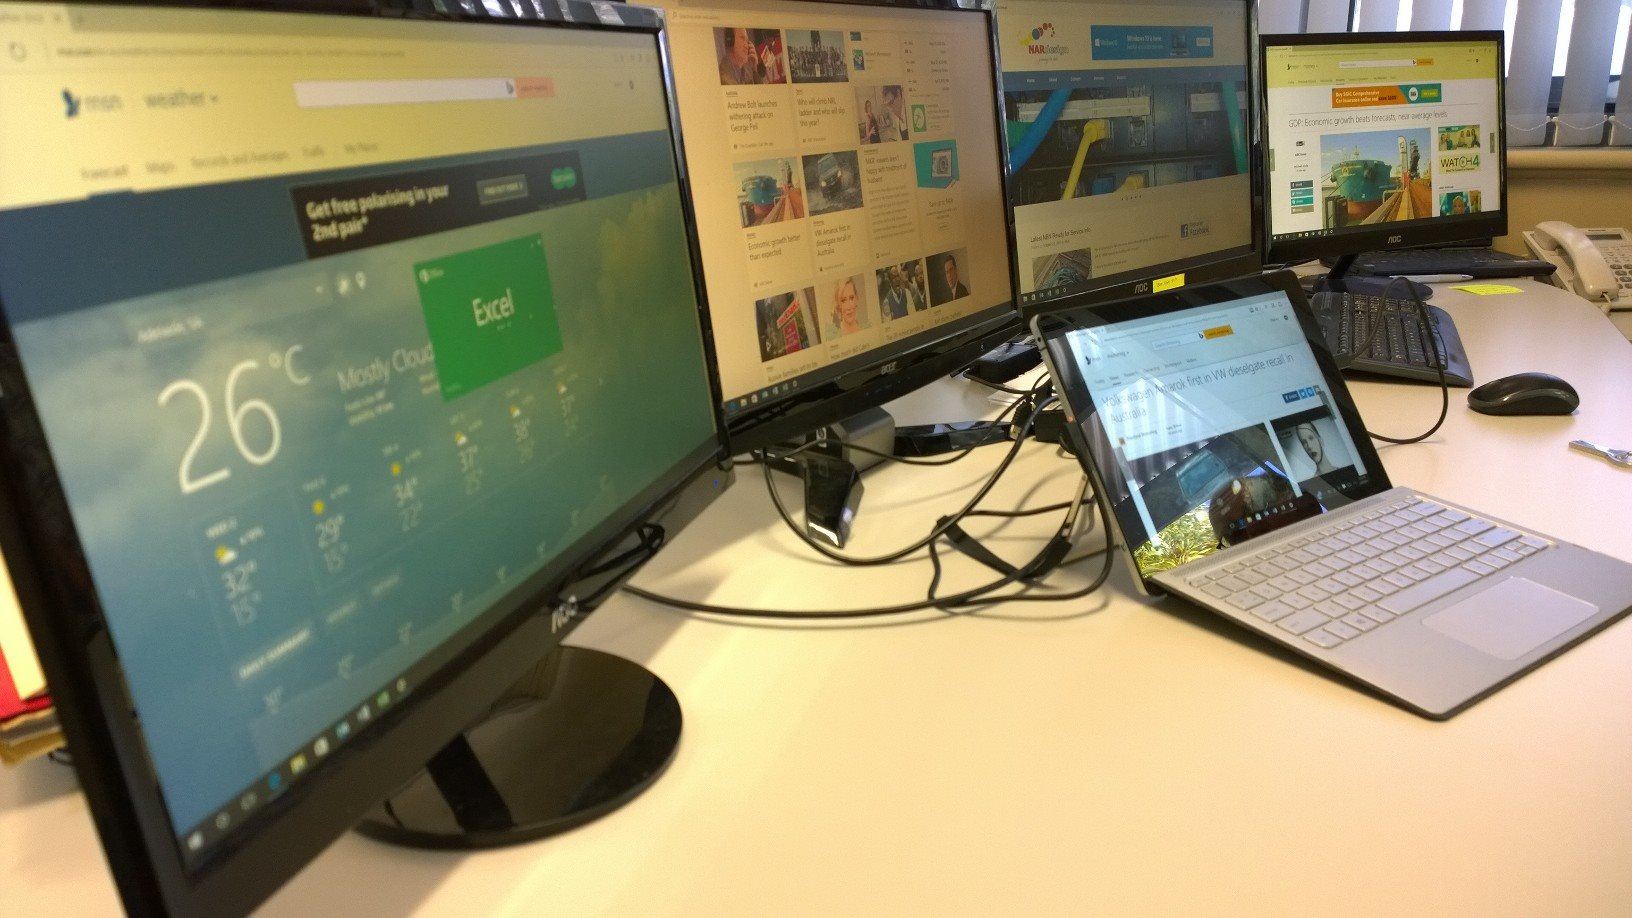 Command Centre V1 Hp Spectre X2 With Four Displays